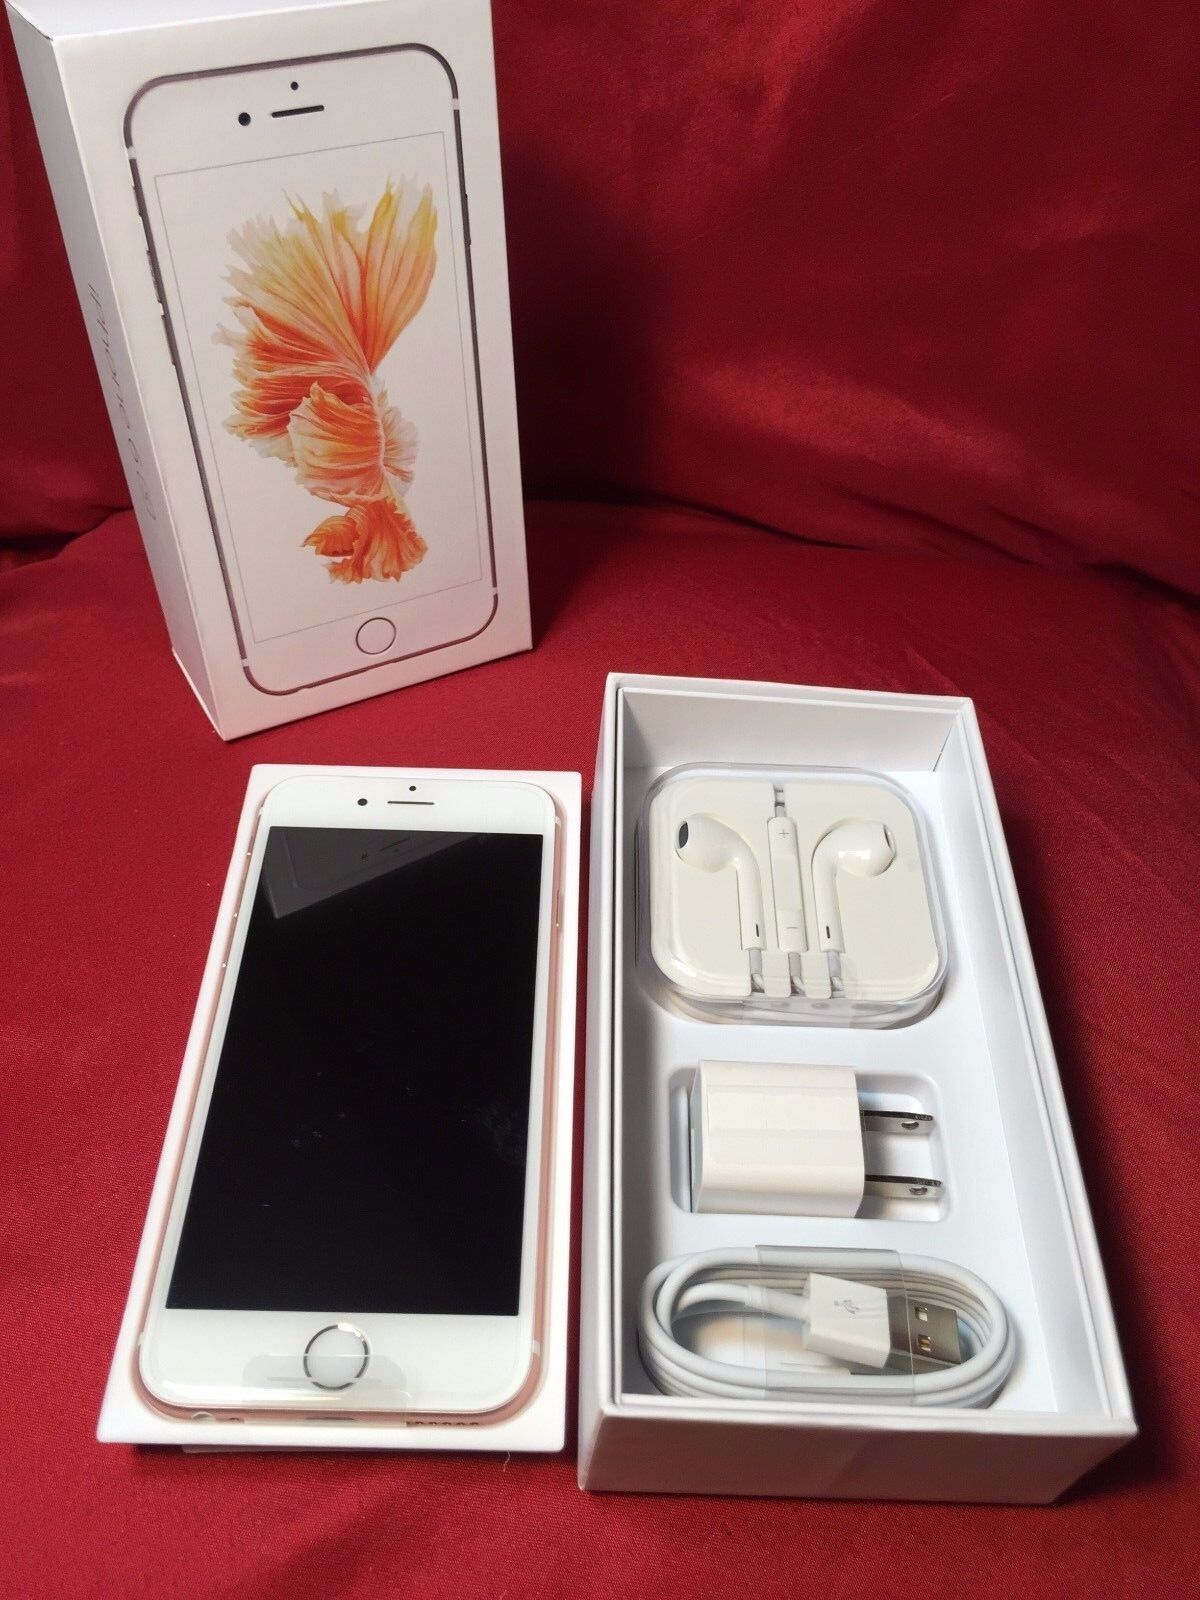 NEW Apple iPhone 6S or 6S Plus - (Unlocked) (T-Mobile) (AT&T) 16 64 128